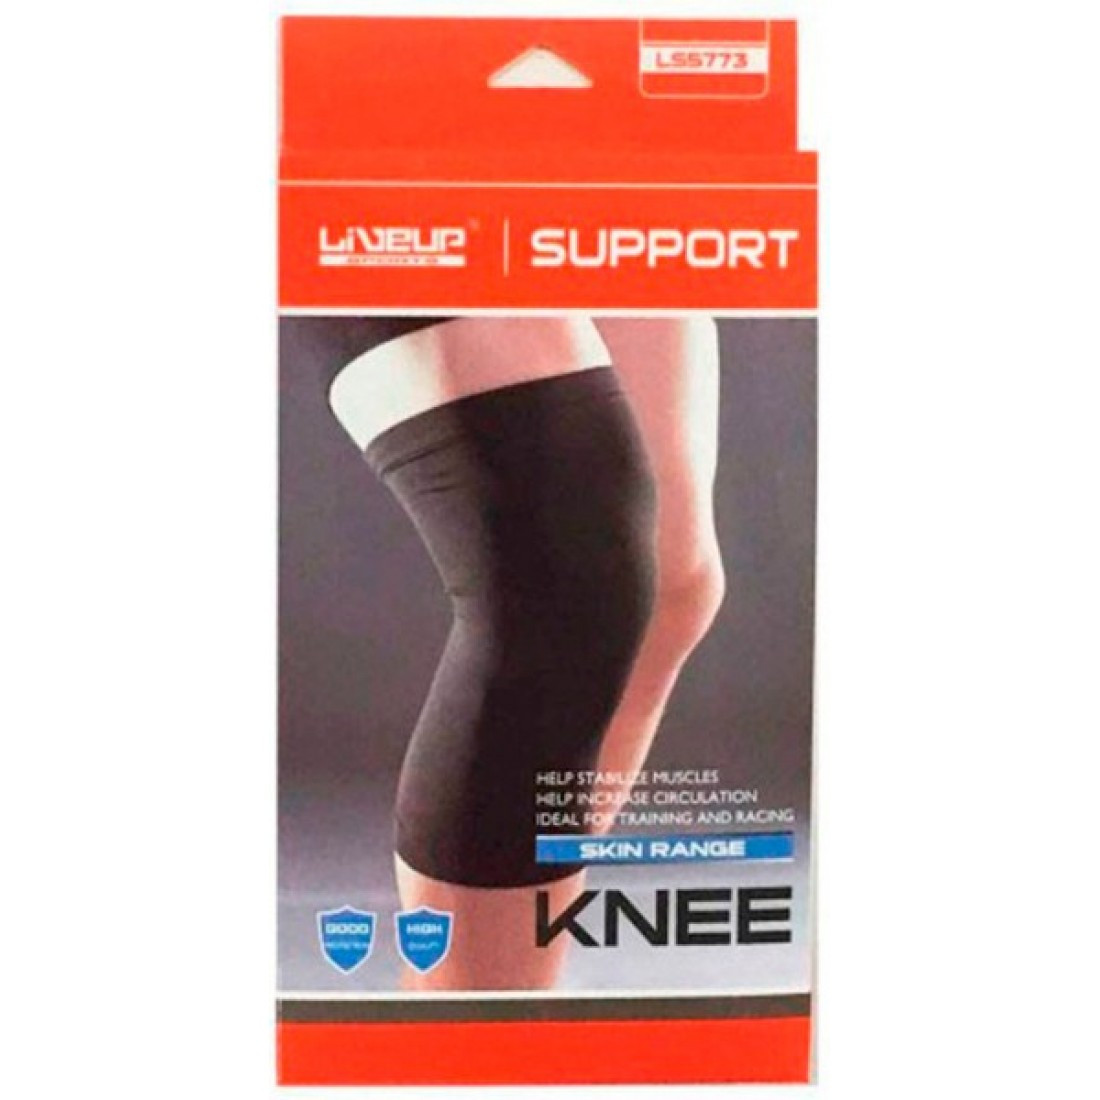 Фиксатор колена LiveUp KNEE SUPPORT, LS5773-LXL